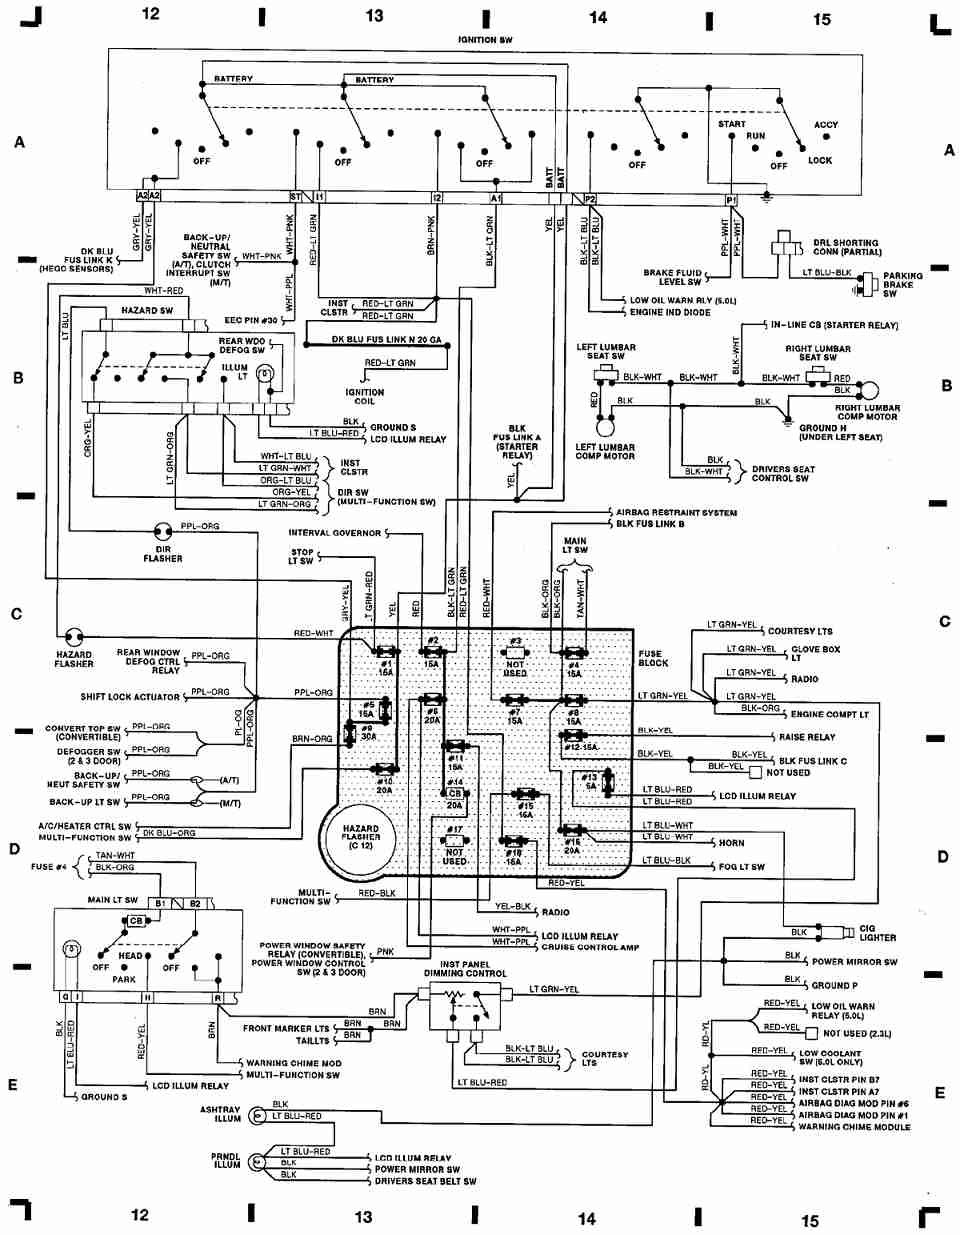 1993 Mustang GT Electrical Wiring Help Needed(Caution PG13